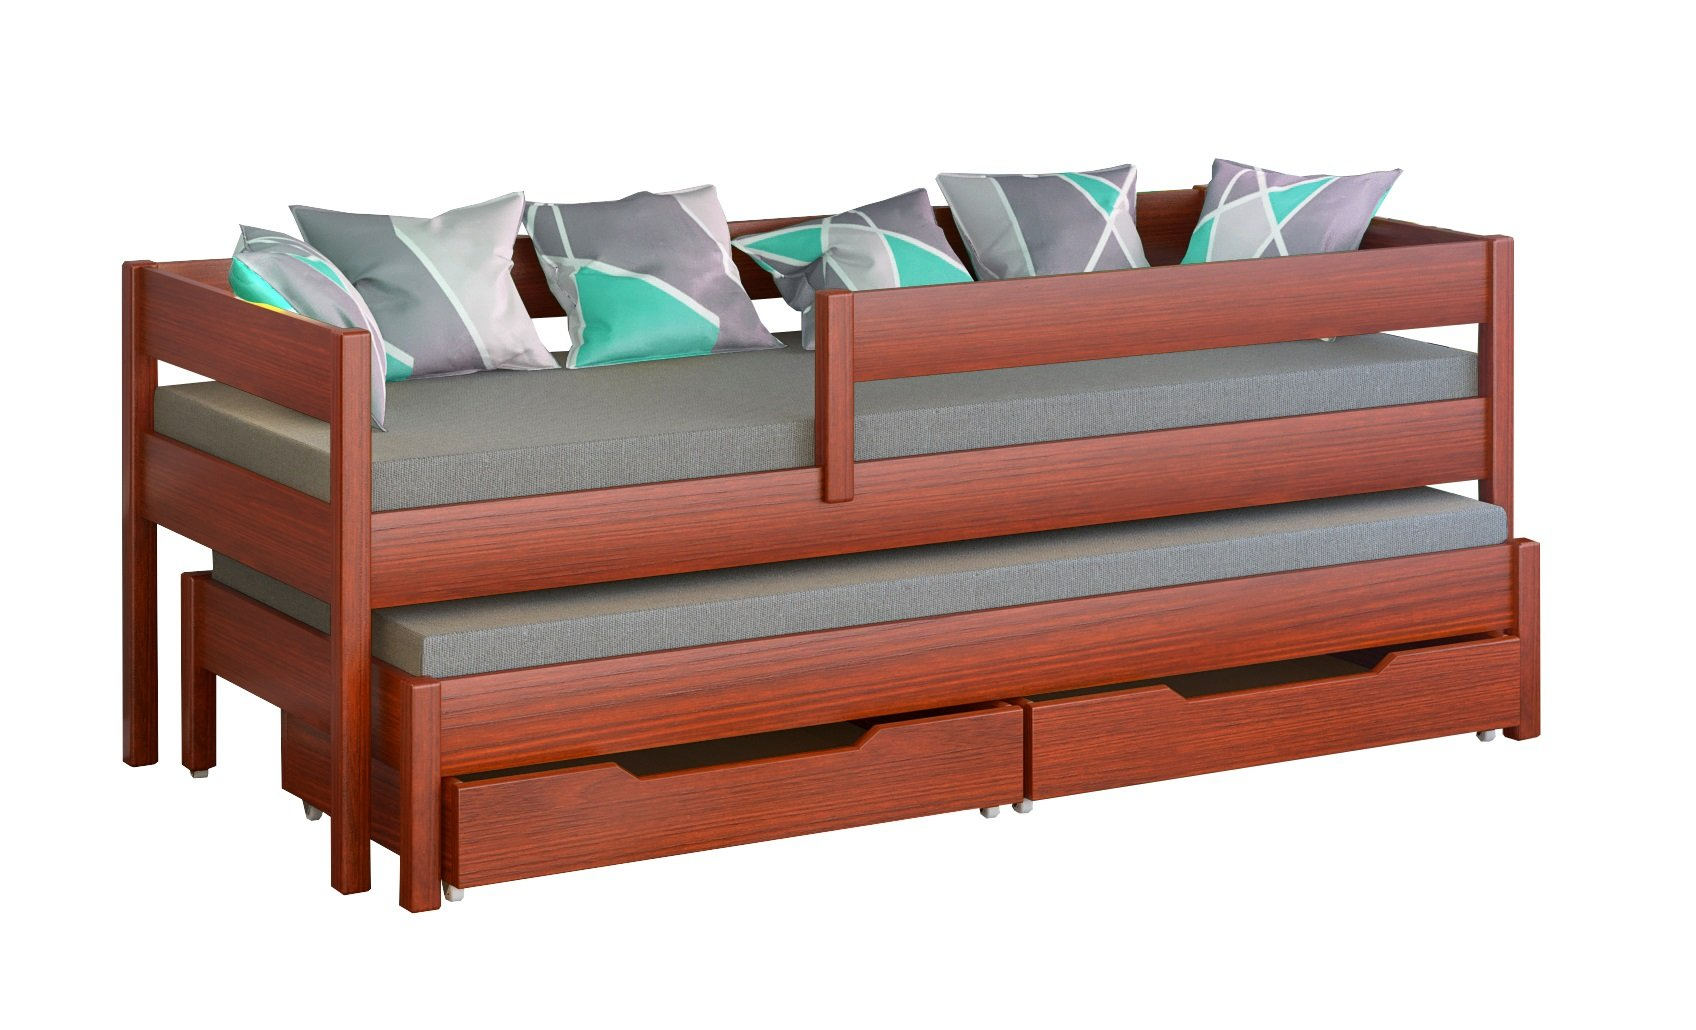 Jula Single bed for kids with trundle. Drawers included (180x80/170x80, Palisander) Jula Bed with trundle Legs made of solid wood with a thickness of 45x45 mm You get the external dimension of the bed by adding 7 cm in to the dimension in table Bedframe strength up to 150kg 1